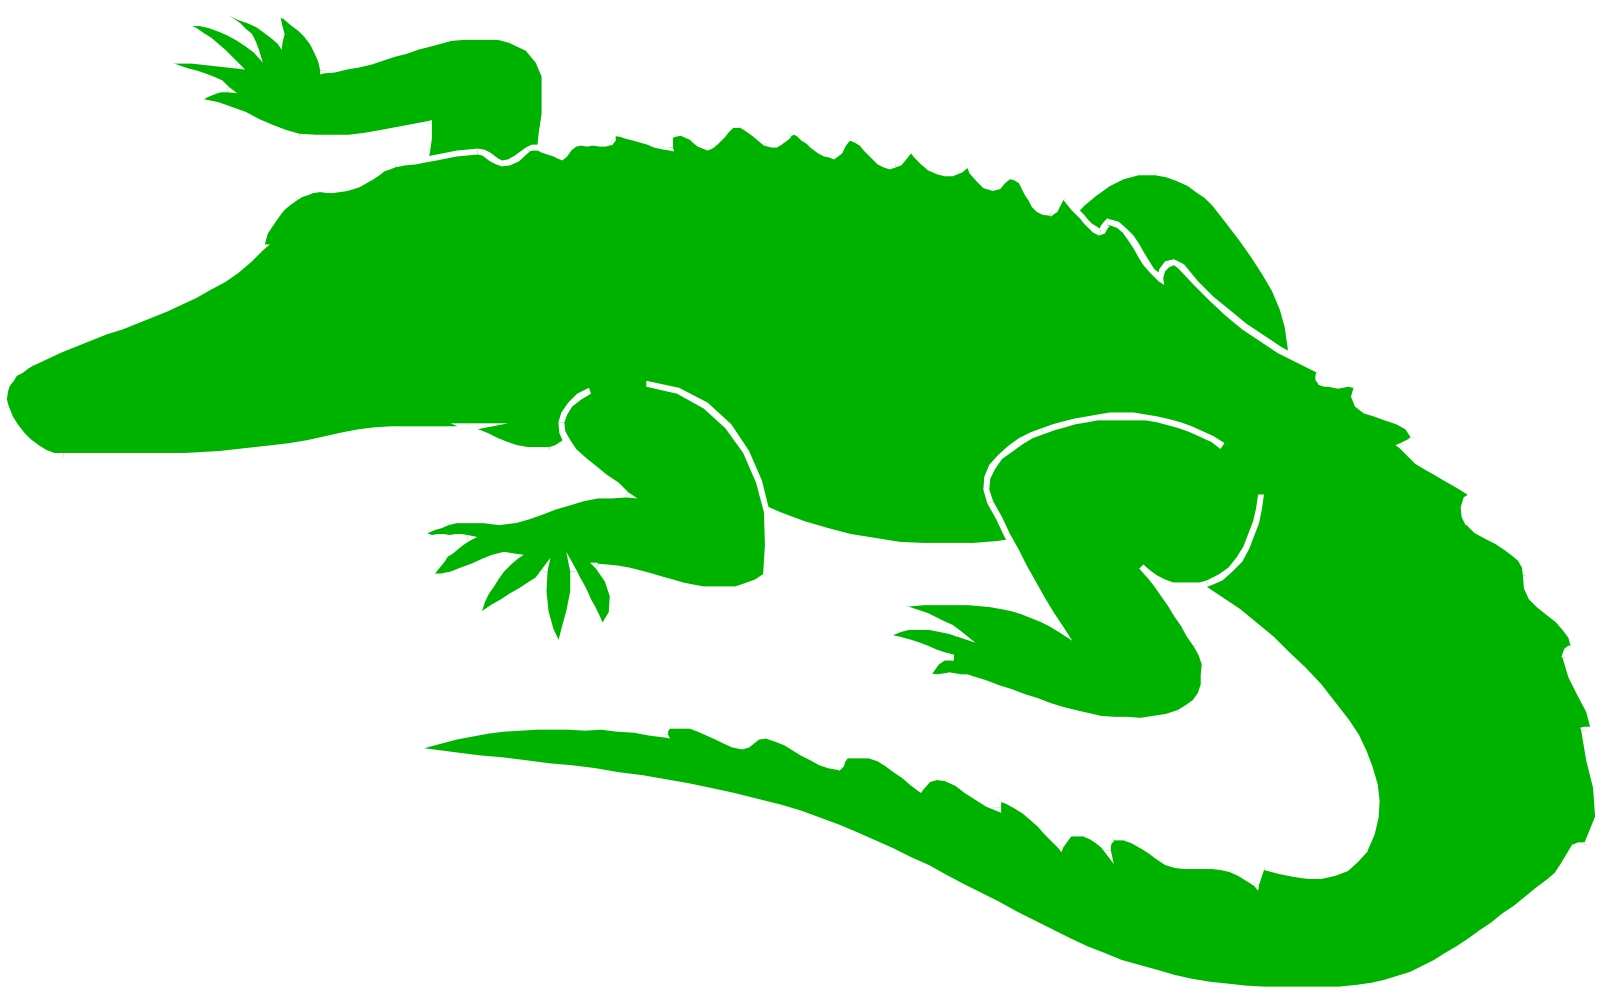 reptile silhouette at getdrawings com free for personal use rh getdrawings com cute reptile clipart reptile clipart free